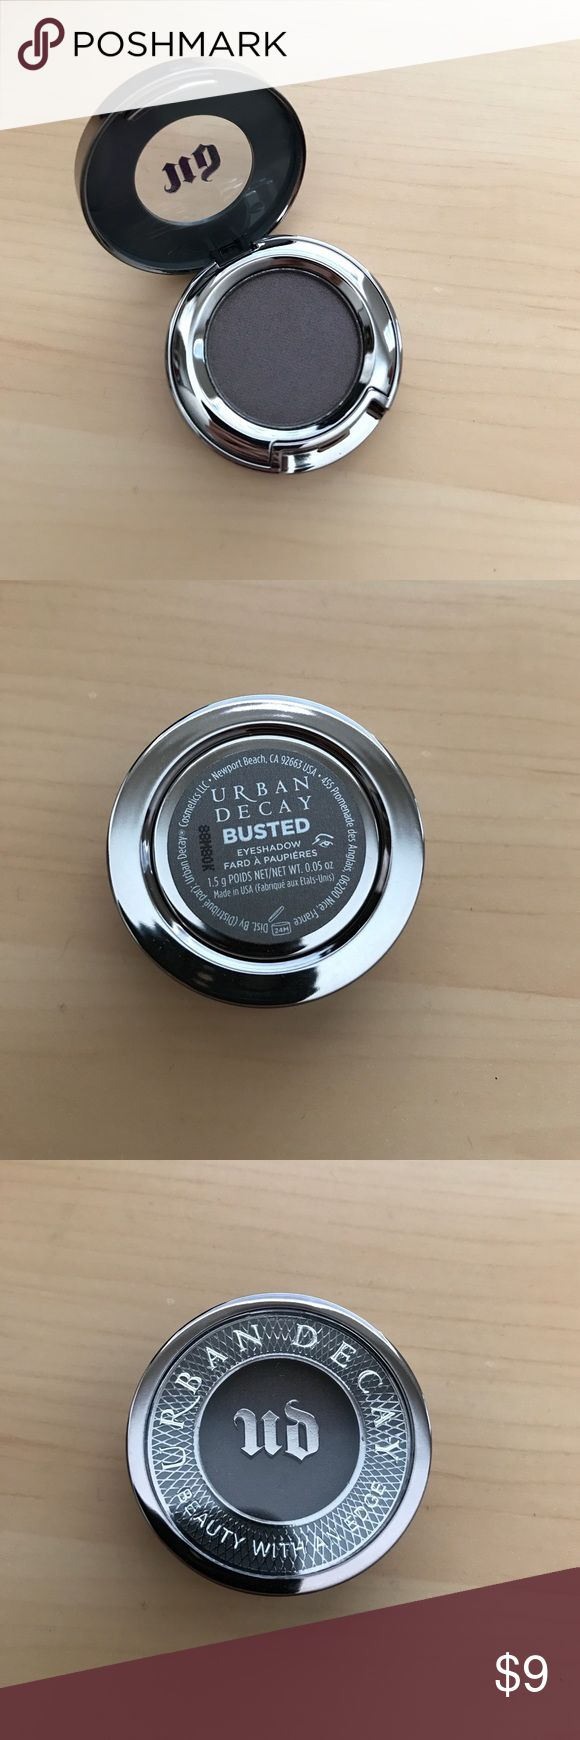 Urban Decay Eyeshadow - Busted Urban Decay Eyeshadow in Busted, from The Mother Lode 2015, brand new never used. Reasonable offers are always welcome + bundle to save! Urban Decay Makeup Eyeshadow